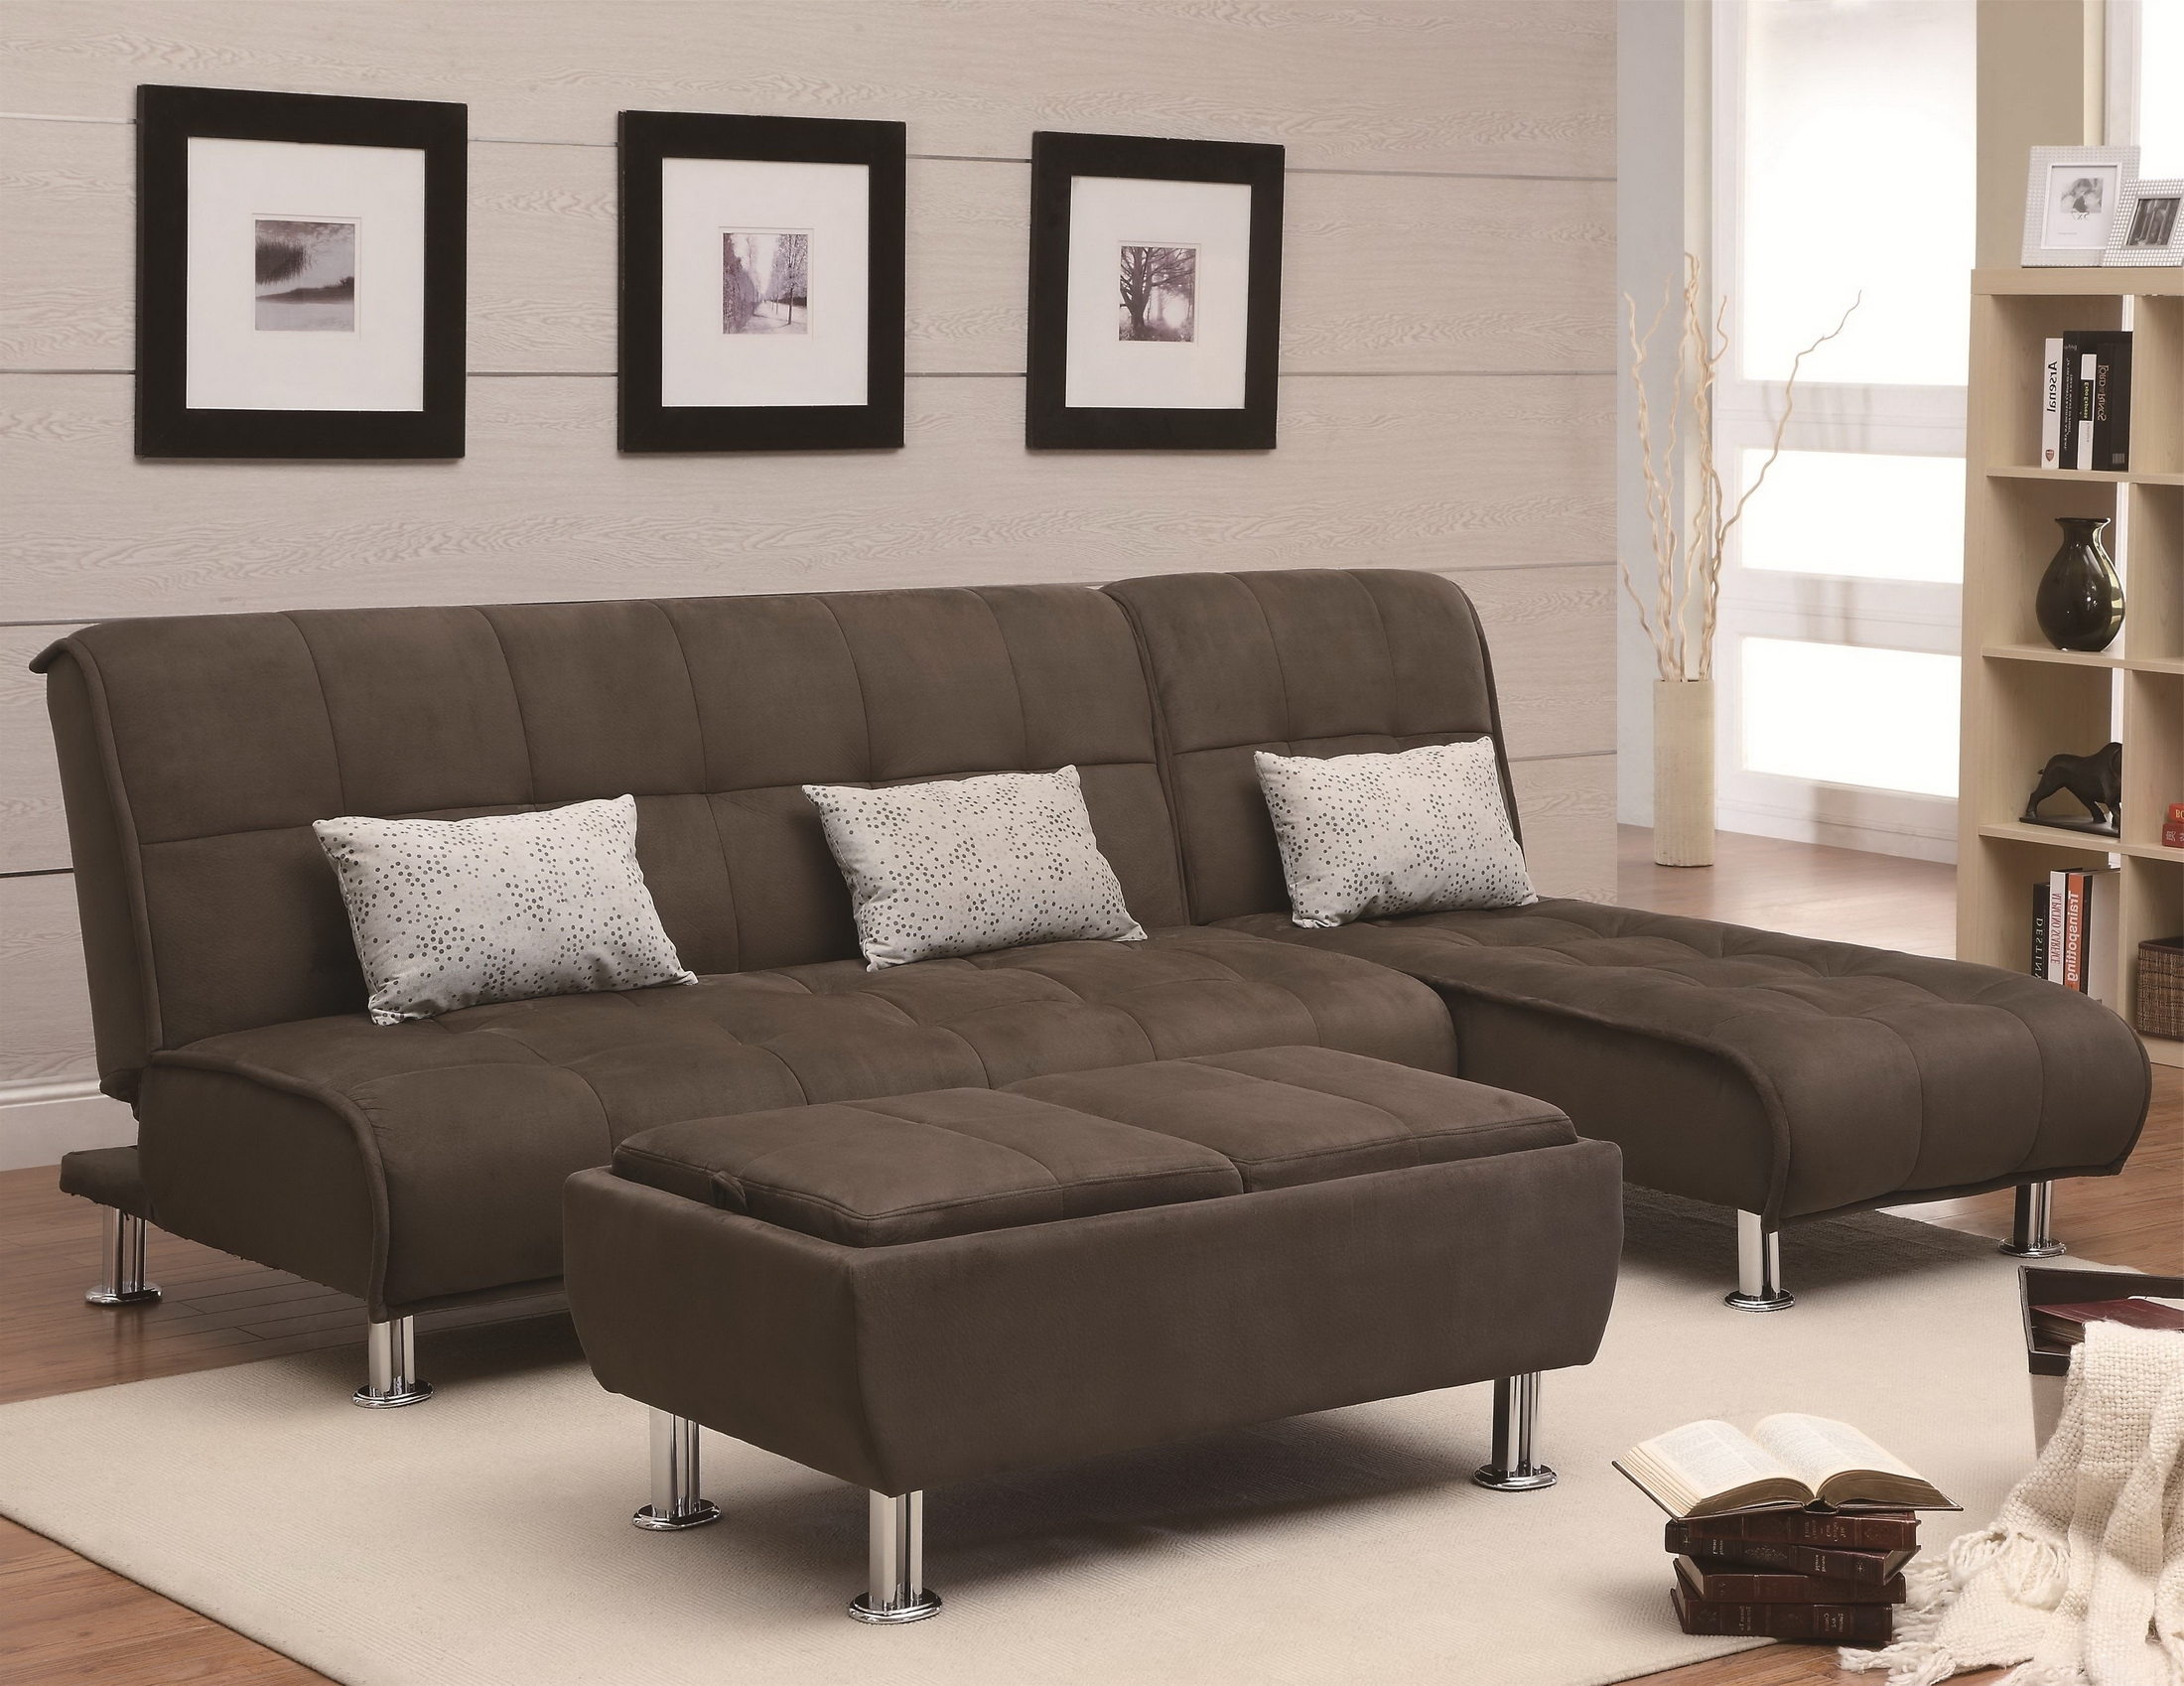 Brown Velvet Sectional Sofa With High Back And Grey Cushions Plus With Regard To Most Current Sectional Sofas With High Backs (View 13 of 20)